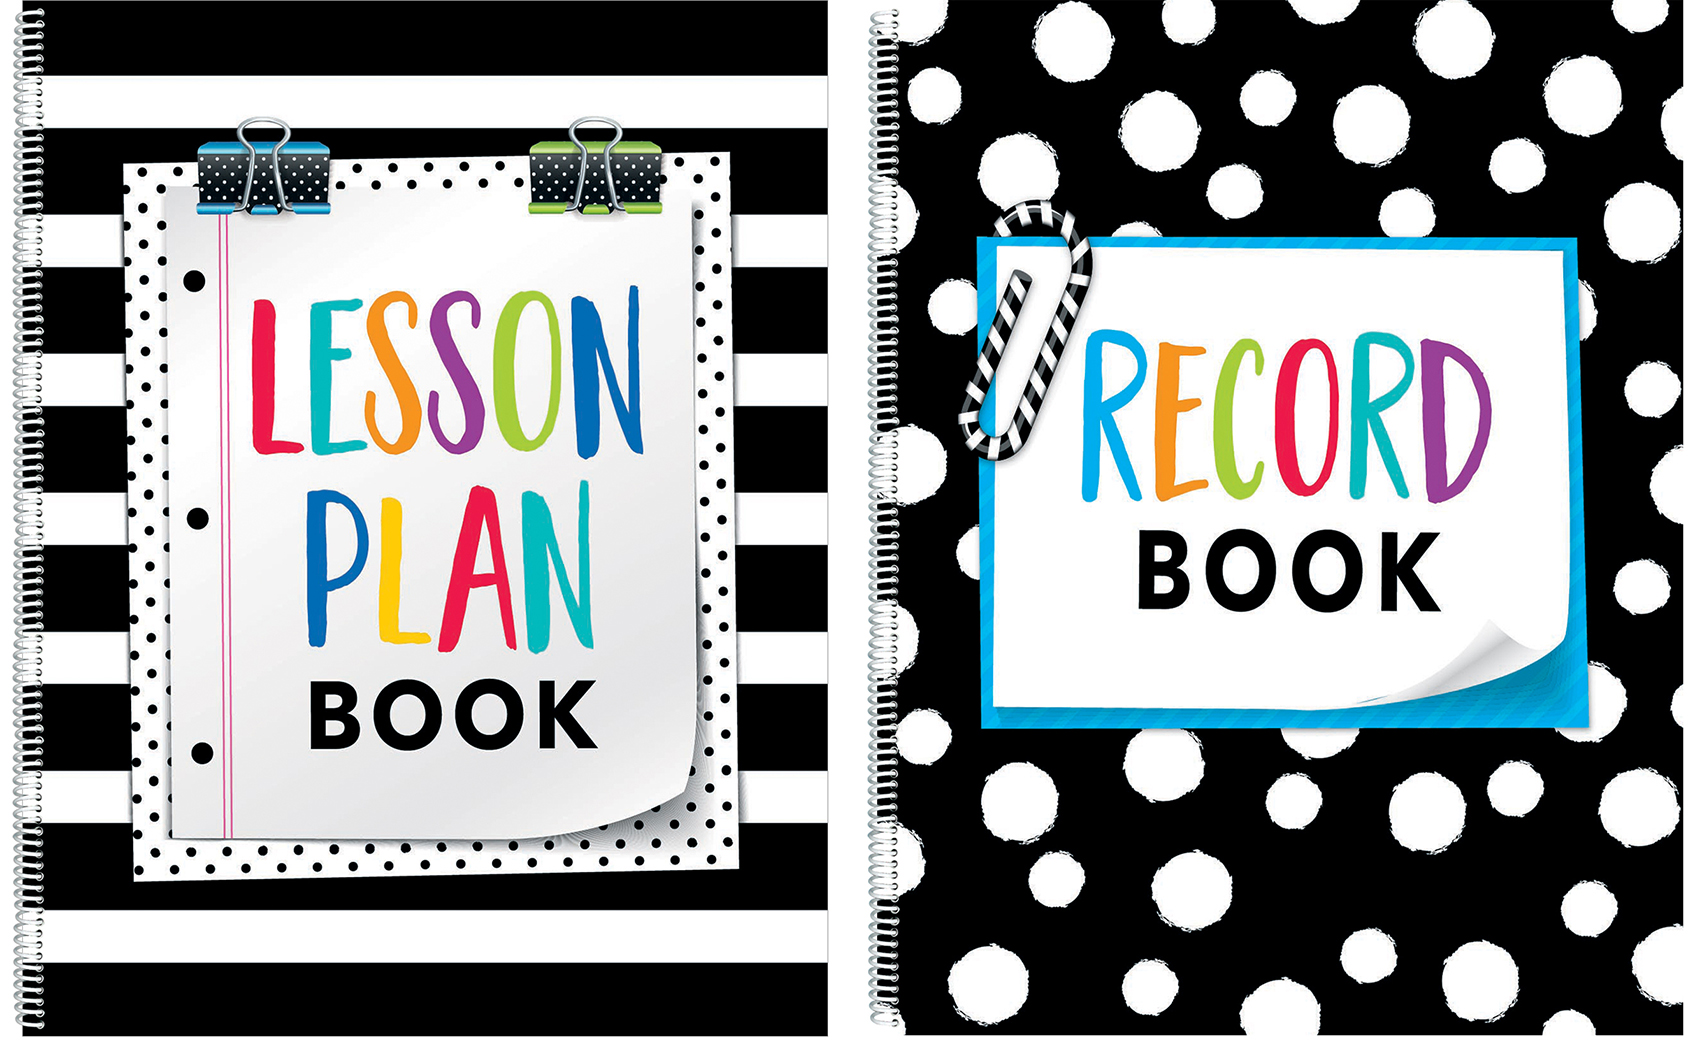 Lesson Plan and Record Books.